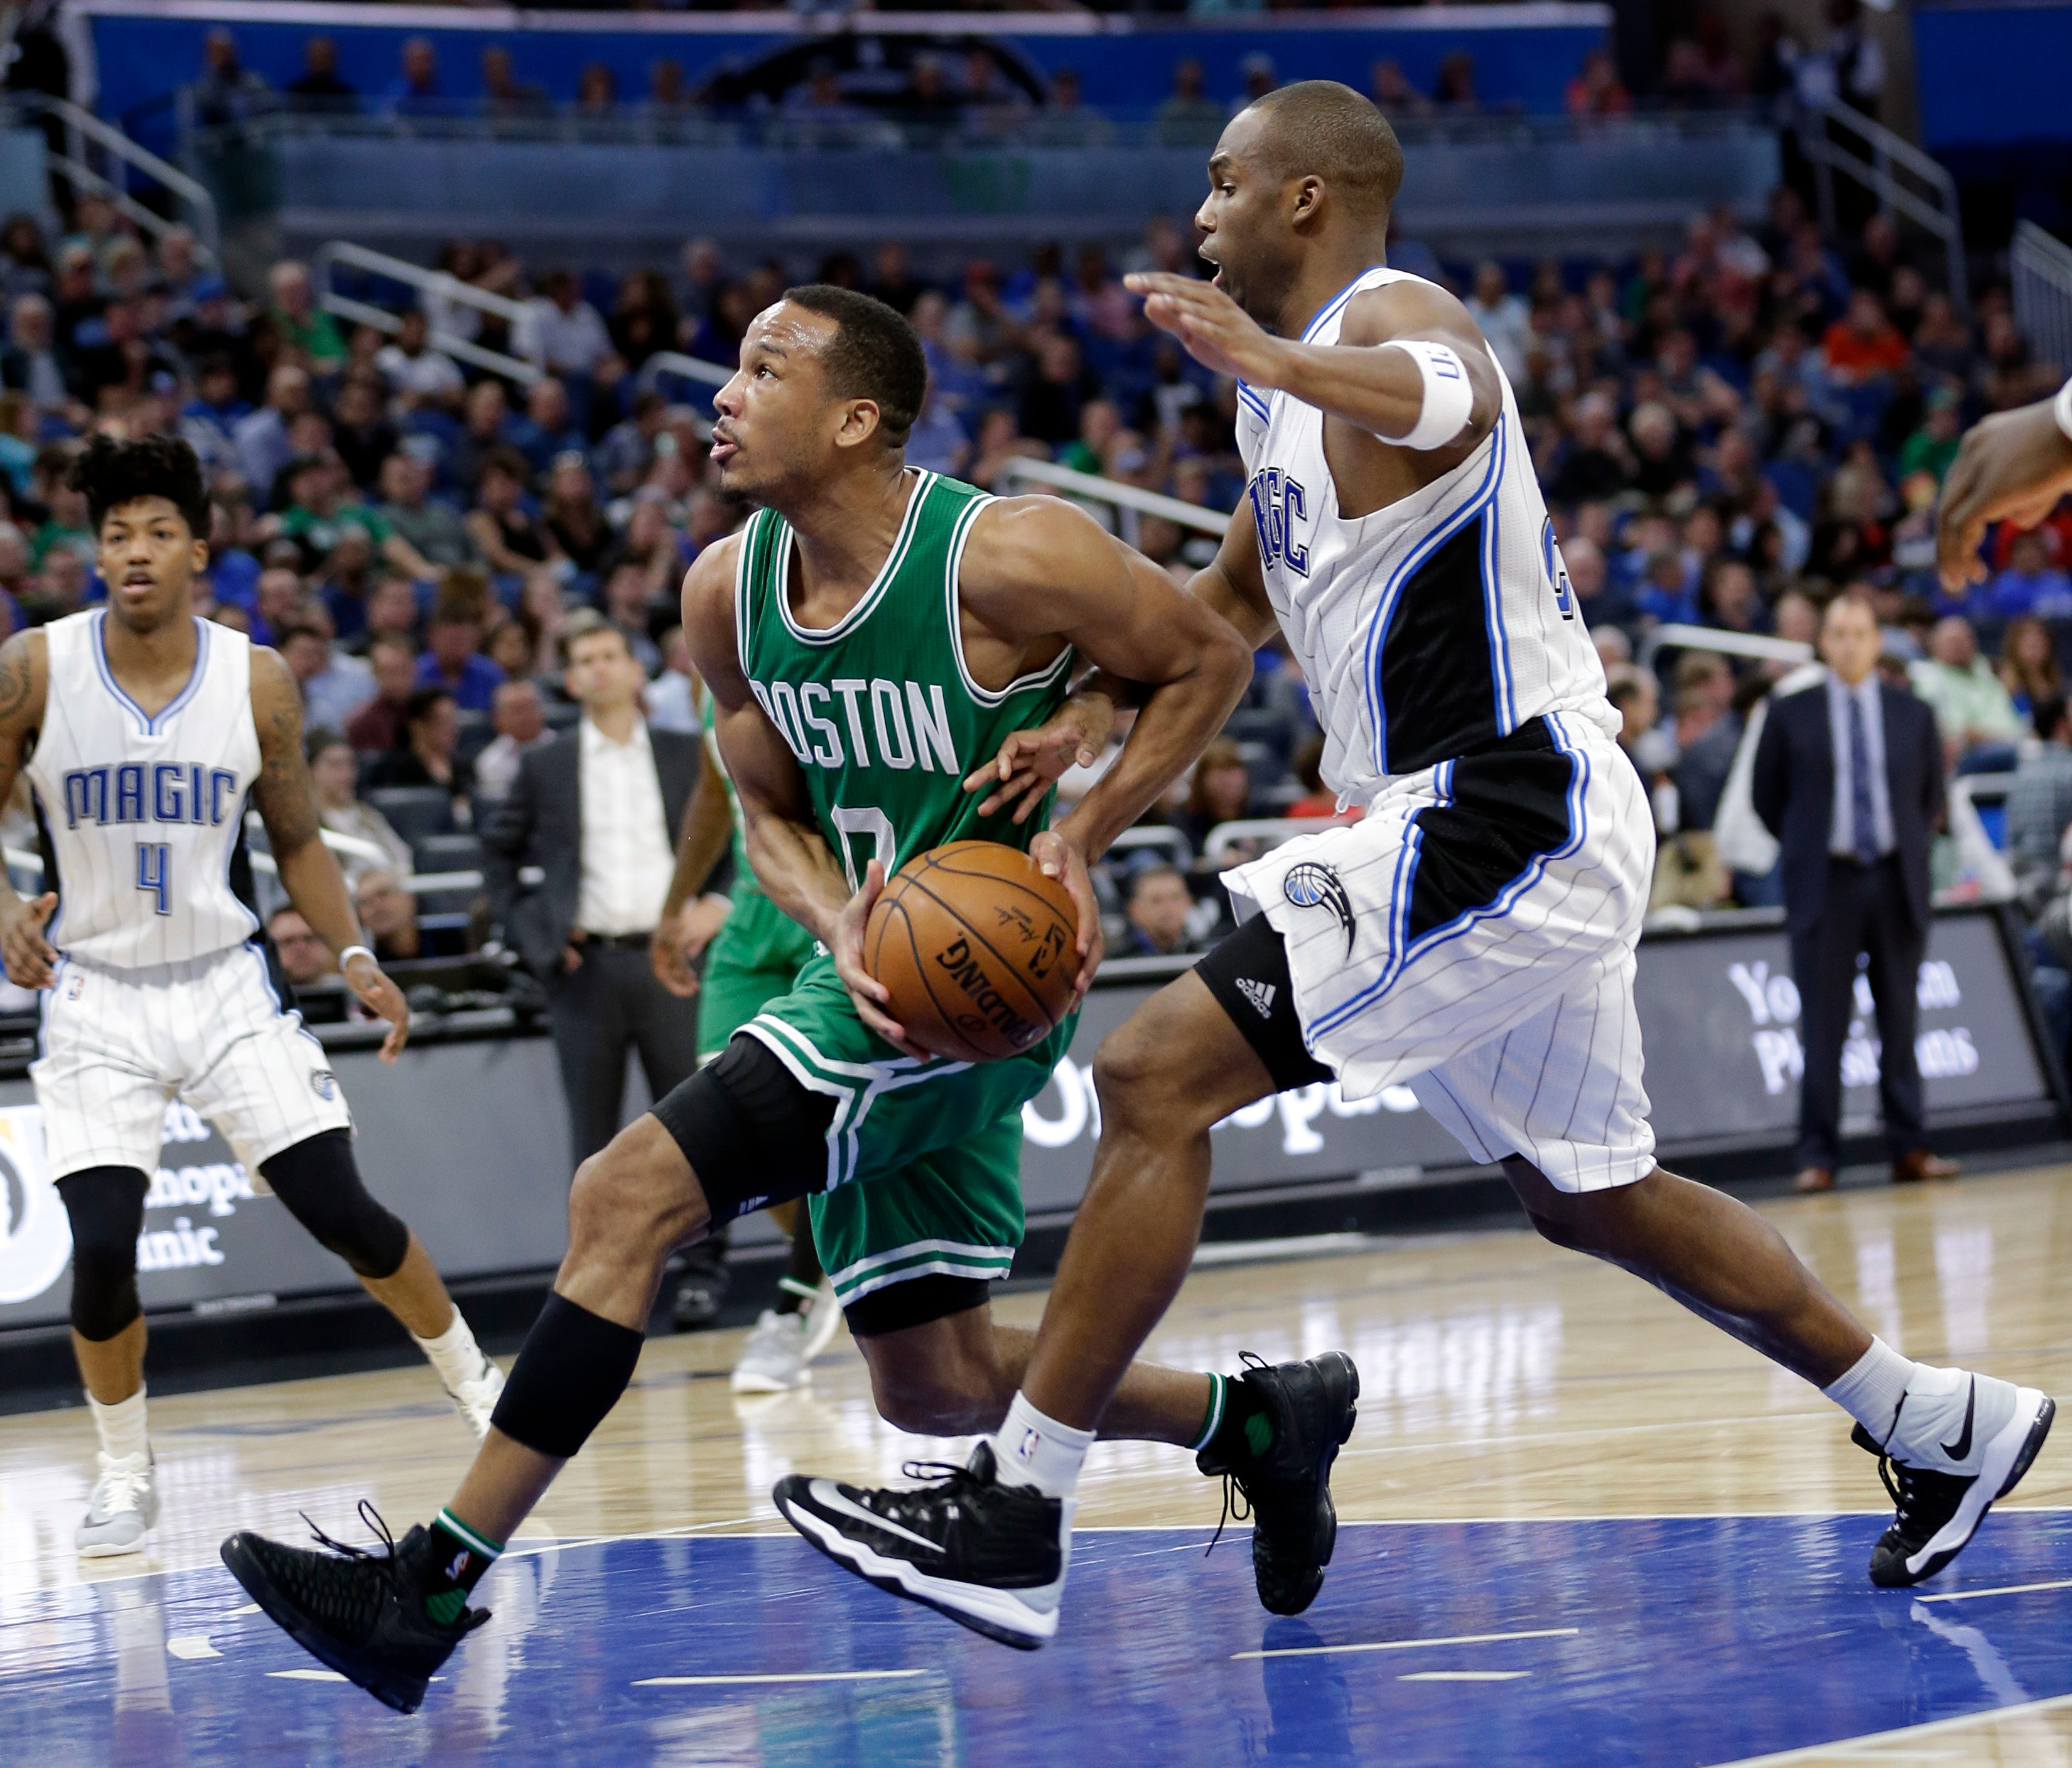 Boston Celtics' Avery Bradley, left, goes past Orlando Magic's Jodie Meeks on a drive to the basket during the second half of an NBA basketball game, Wednesday, Dec. 7, 2016, in Orlando, Fla. Boston won 117-87. (AP Photo/John Raoux)